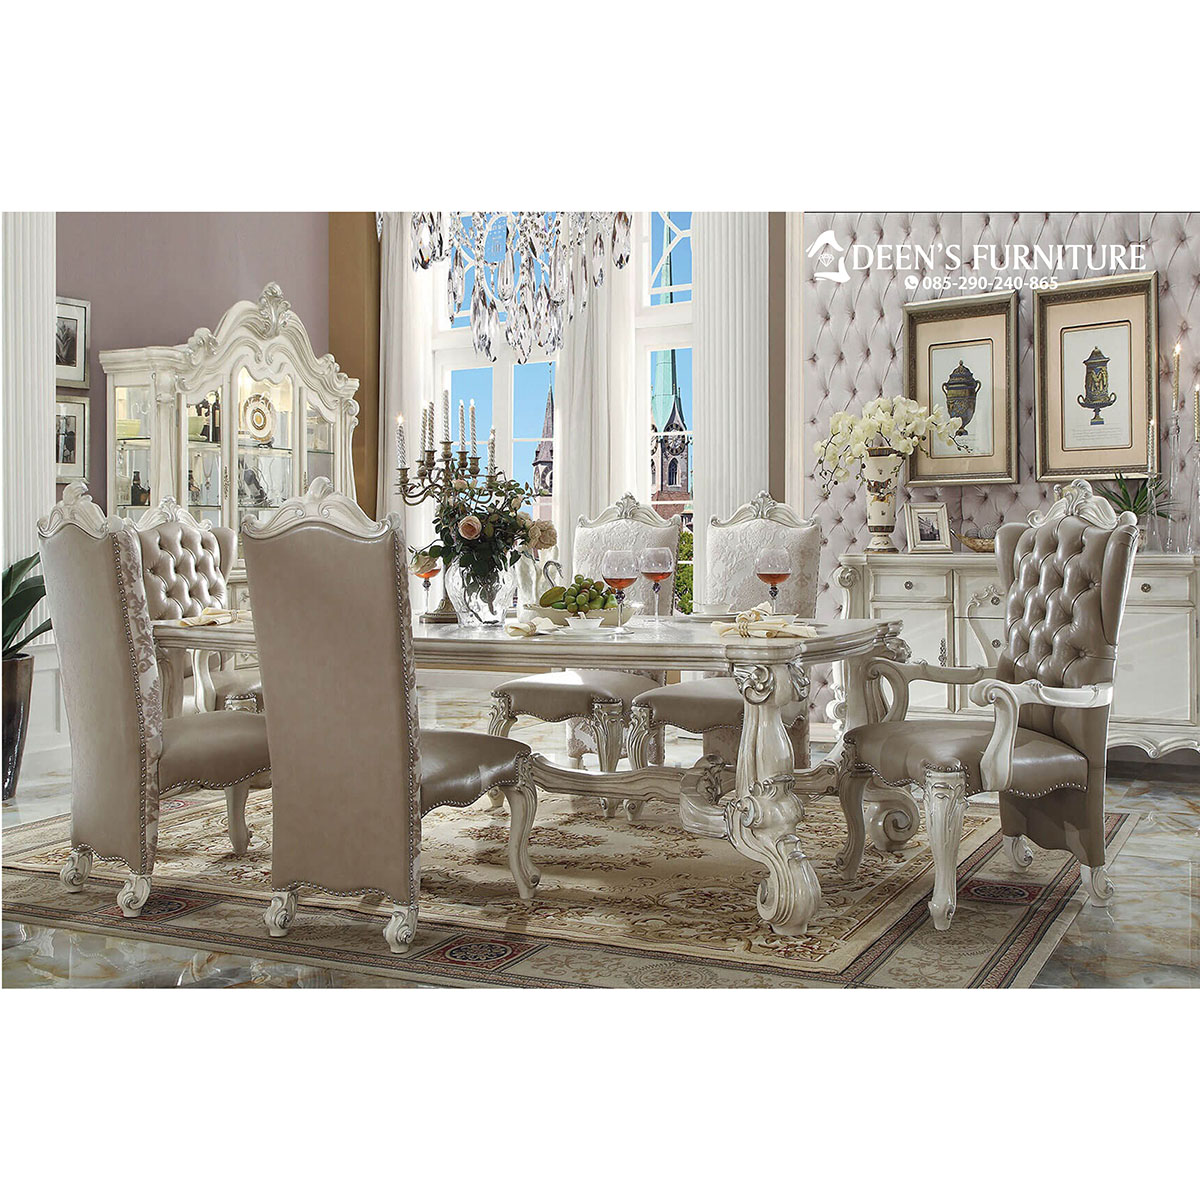 Meja Makan Mewah Ukir Custom Furniture Indonesia